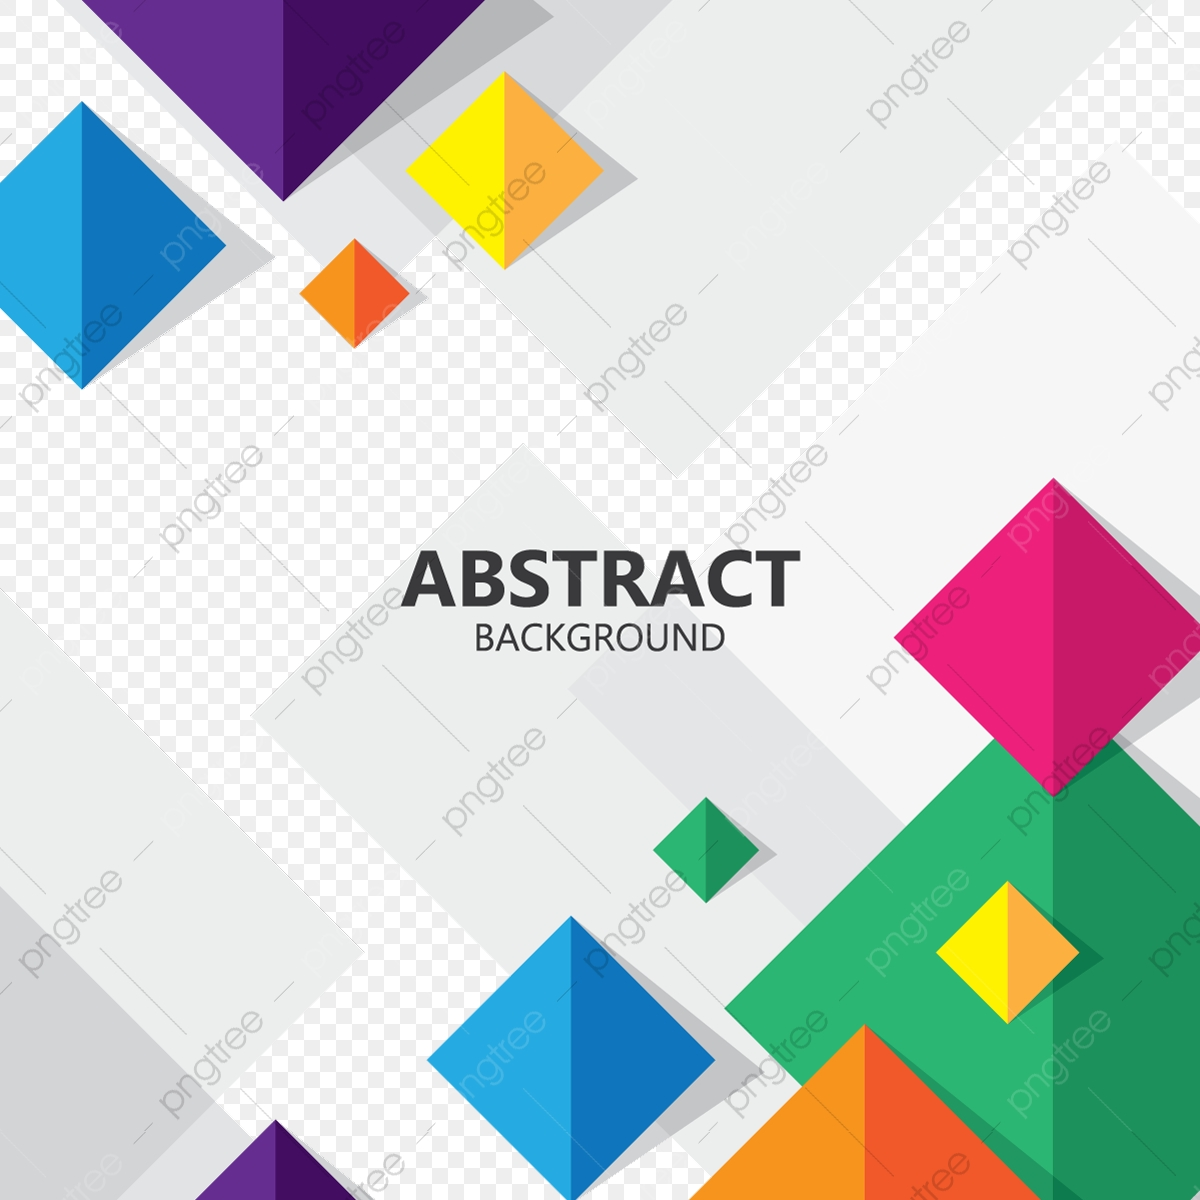 Abstract Square Colorful Geometric Background Vector Geometric Backdrop Modern Png And Vector With Transparent Background For Free Download